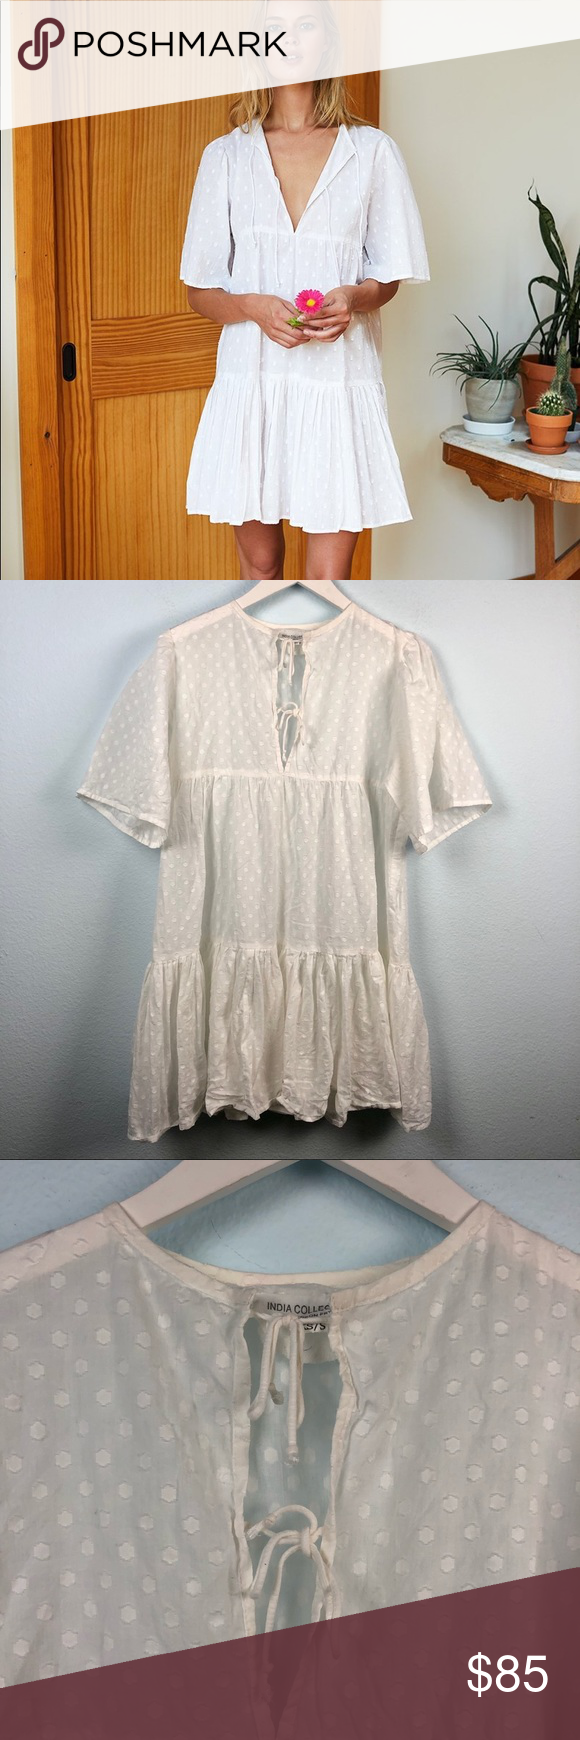 Emerson Fry white Swiss dot Isla dress Emerson Fry India Collection white Swiss dot short sleeve mini dress. Slightly sheer, light and breezy fit. Two front neckline ties. 100% cotton. In excellent condition. Still being sold online for full price. Emerson Fry Dresses Mini #emersonfry Emerson Fry white Swiss dot Isla dress Emerson Fry India Collection white Swiss dot short sleeve mini dress. Slightly sheer, light and breezy fit. Two front neckline ties. 100% cotton. In excellent condition. Still #emersonfry